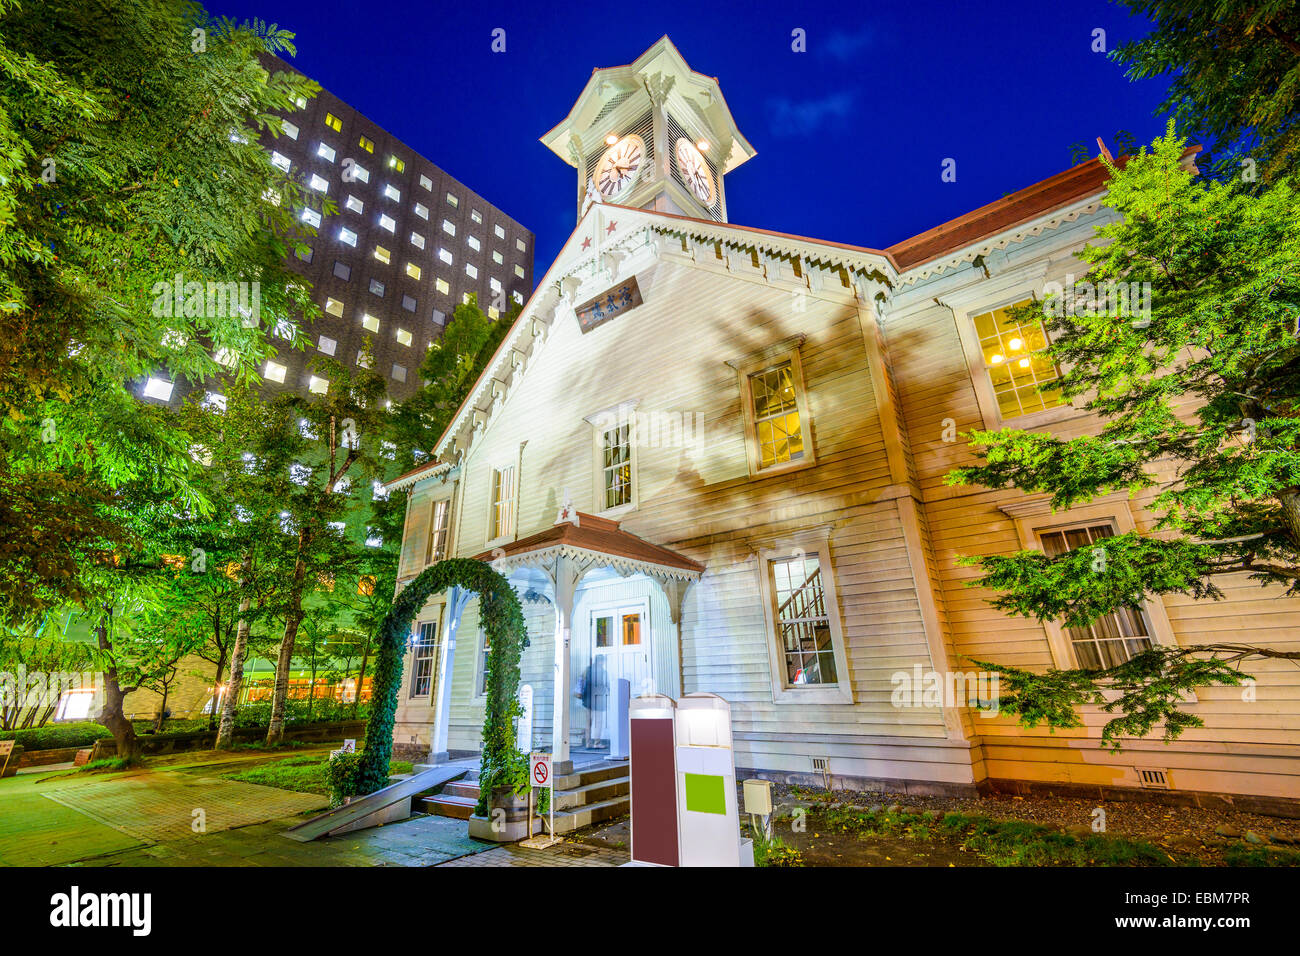 Sapporo, Japan at the Sapporo Clock Tower. - Stock Image